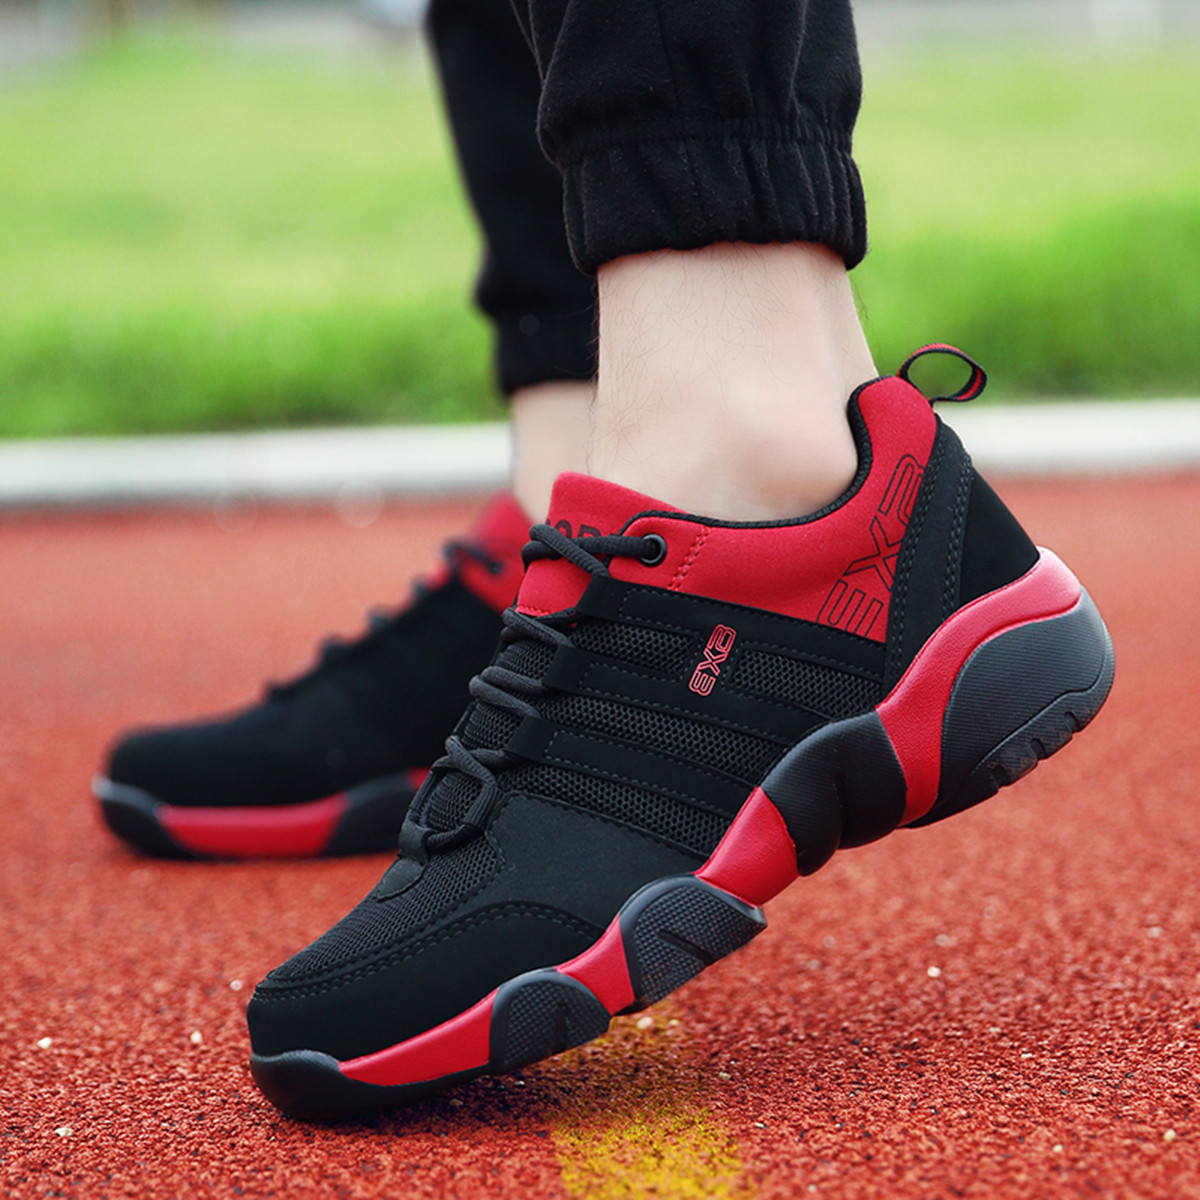 Gracosy Running Shoes Lightweight Sports Casual Sneaker City Shoes Running Sneakers for Men and Women